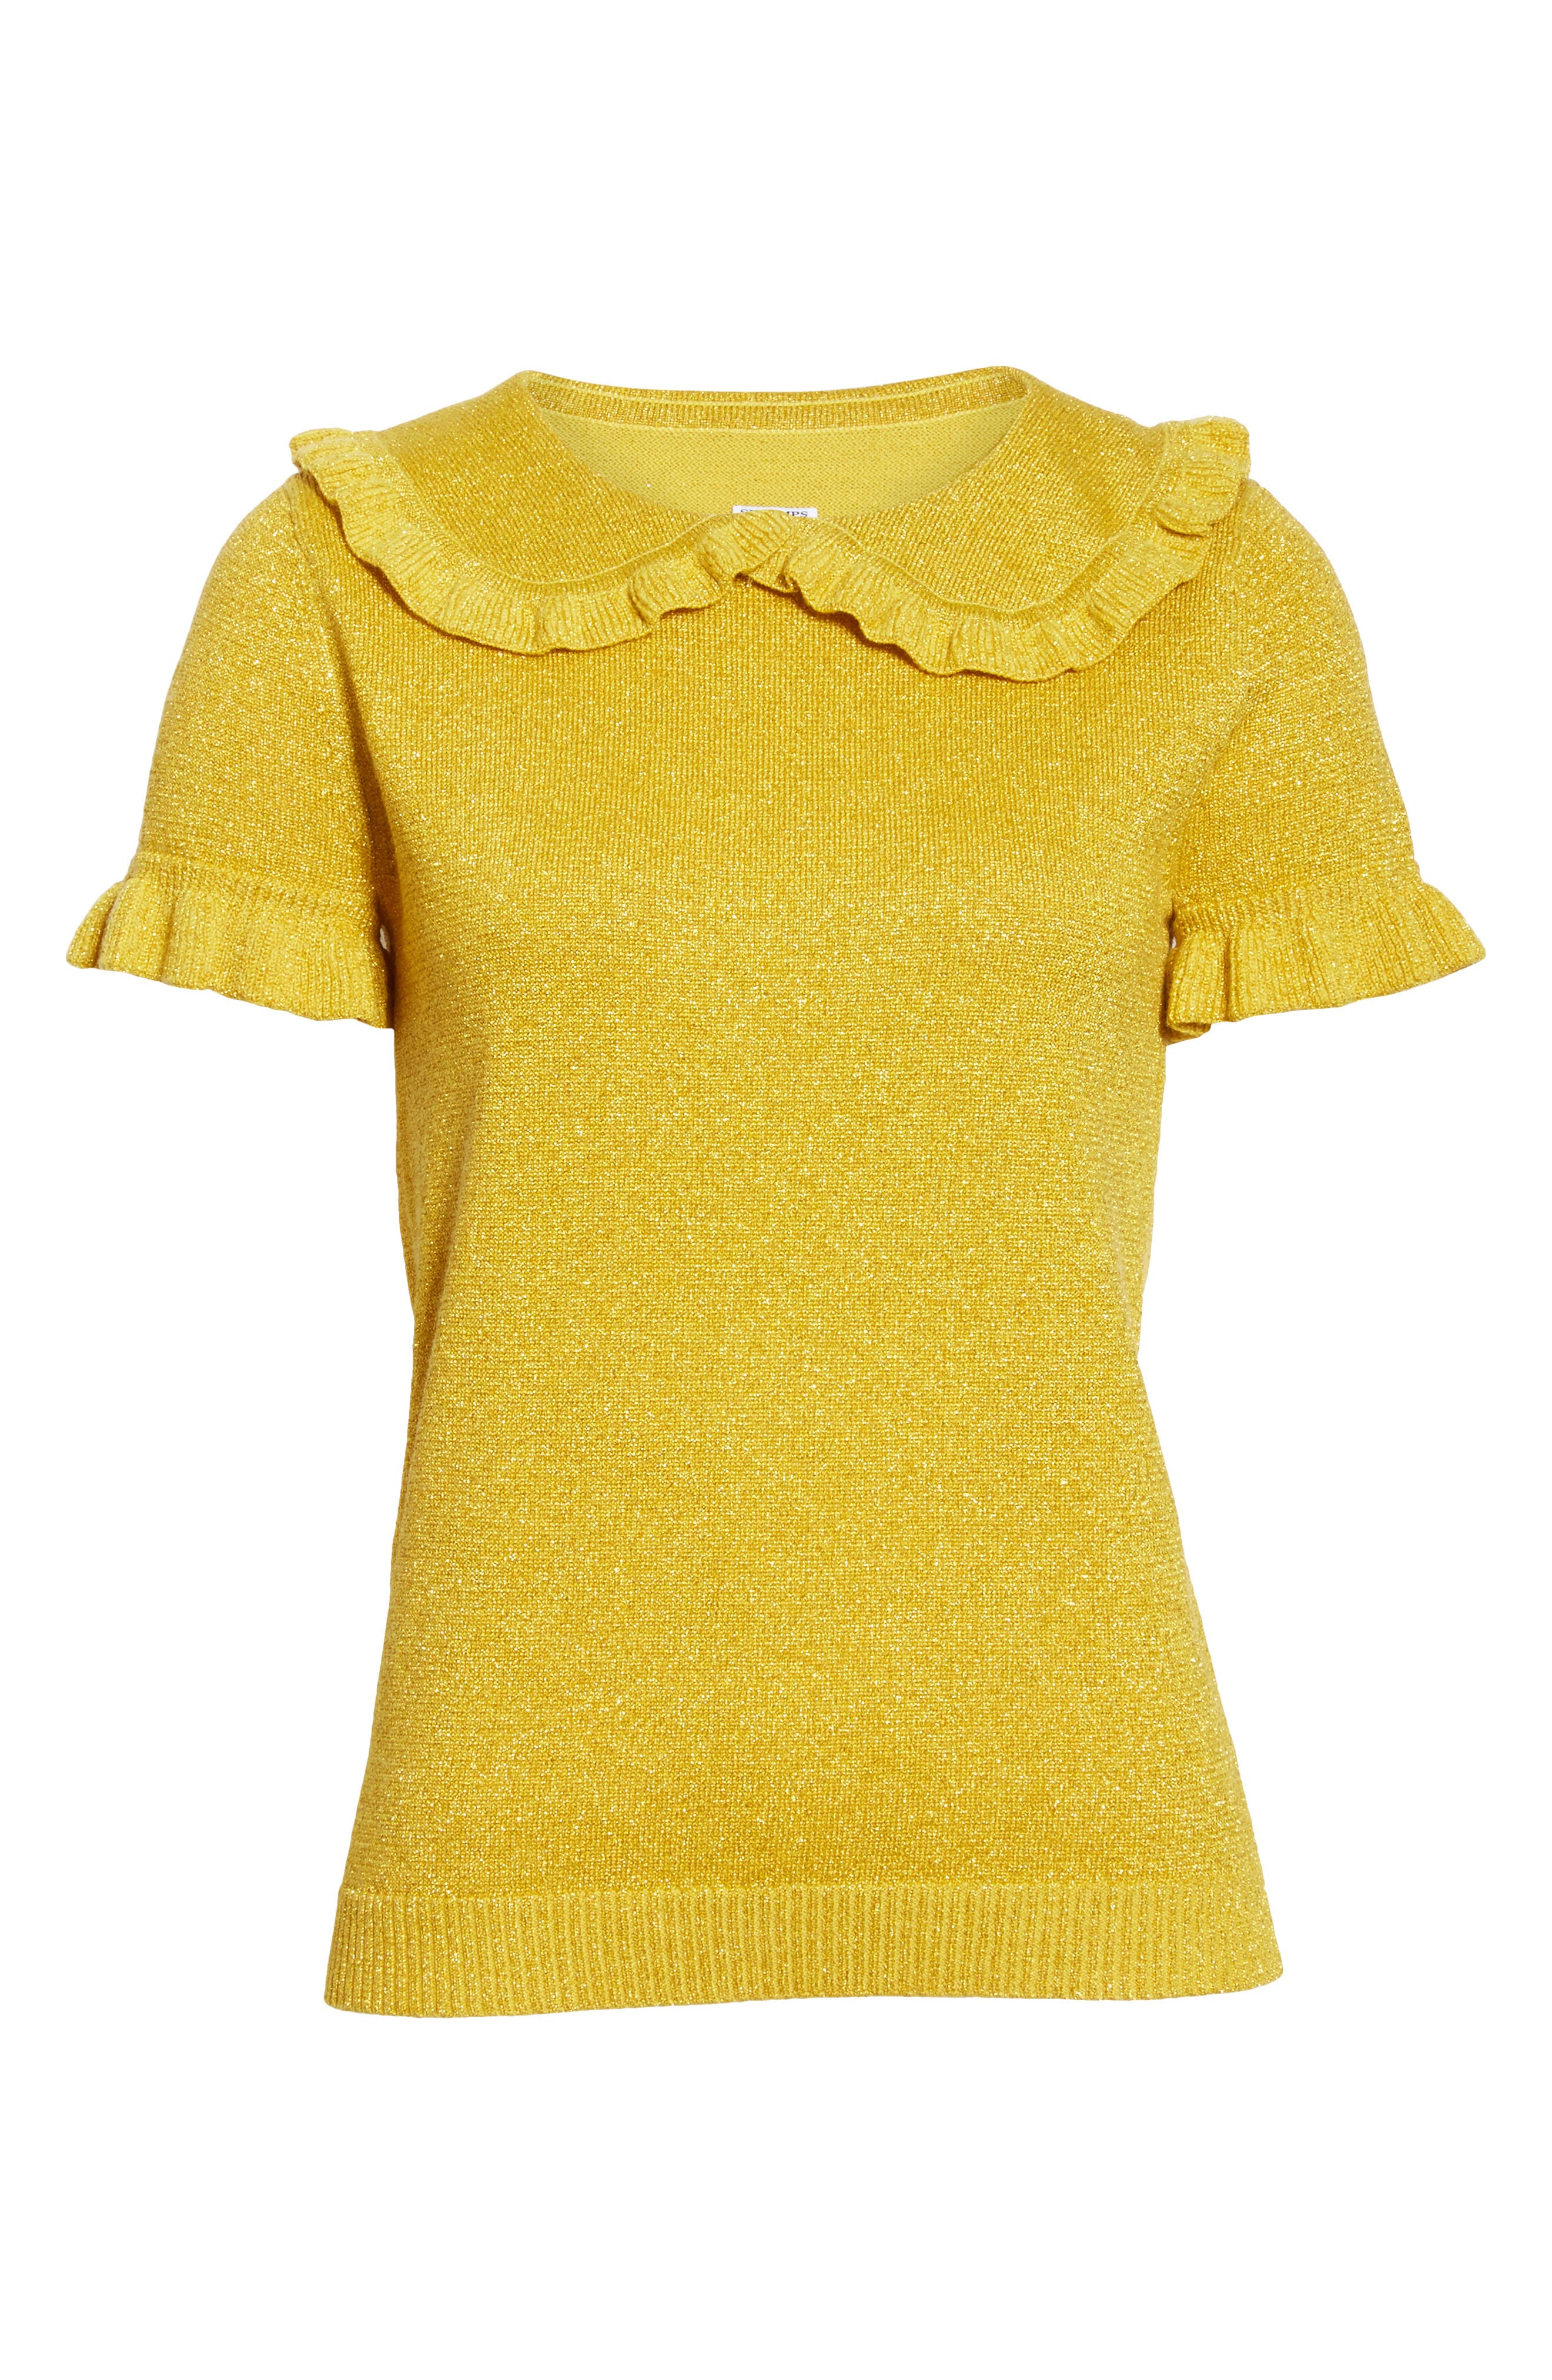 Campbell Frill Metallic Sweater,                             Alternate thumbnail 6, color,                             700